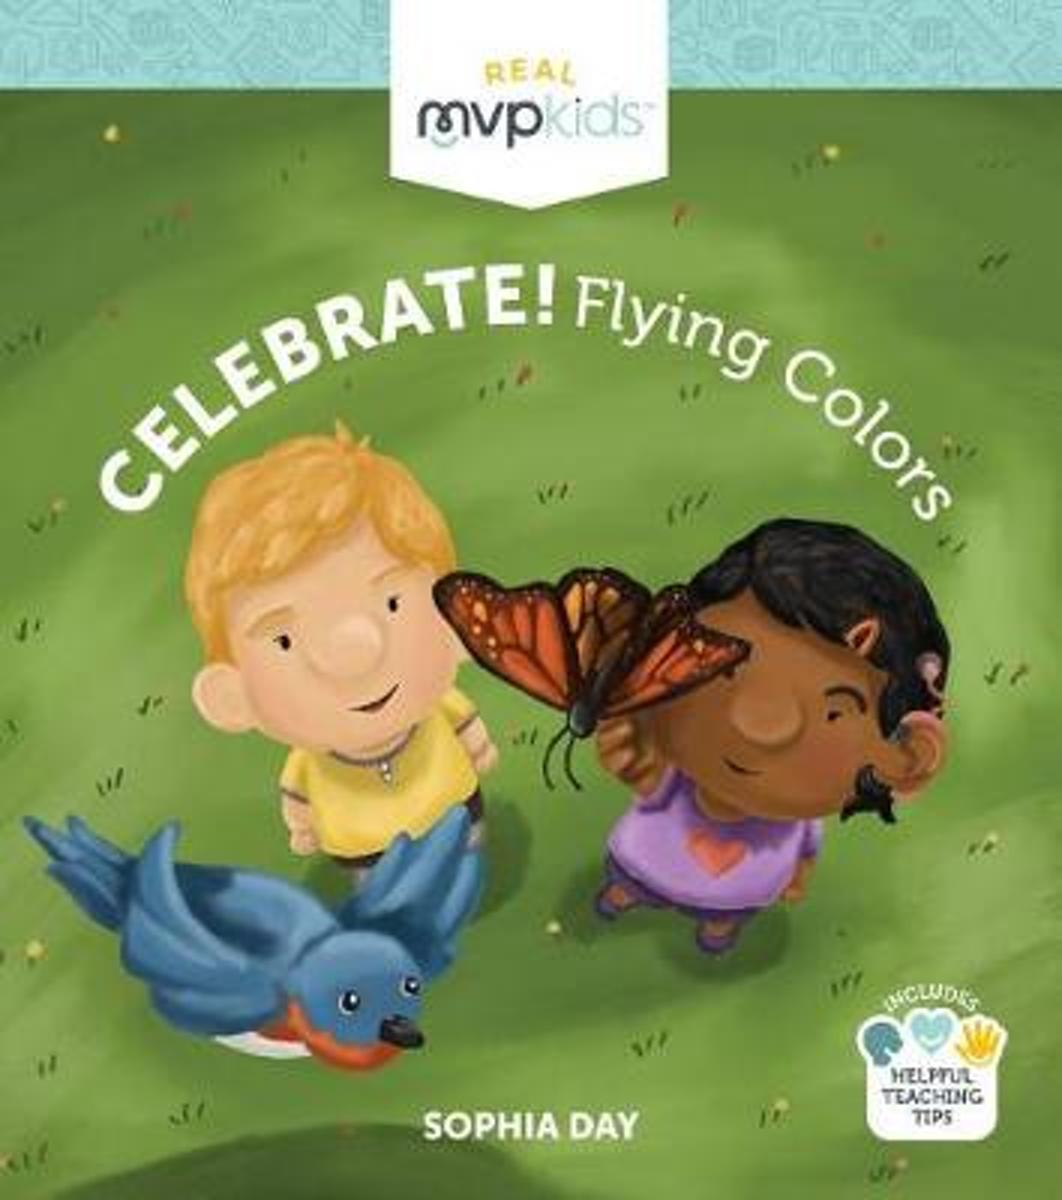 Celebrate! Flying Colors